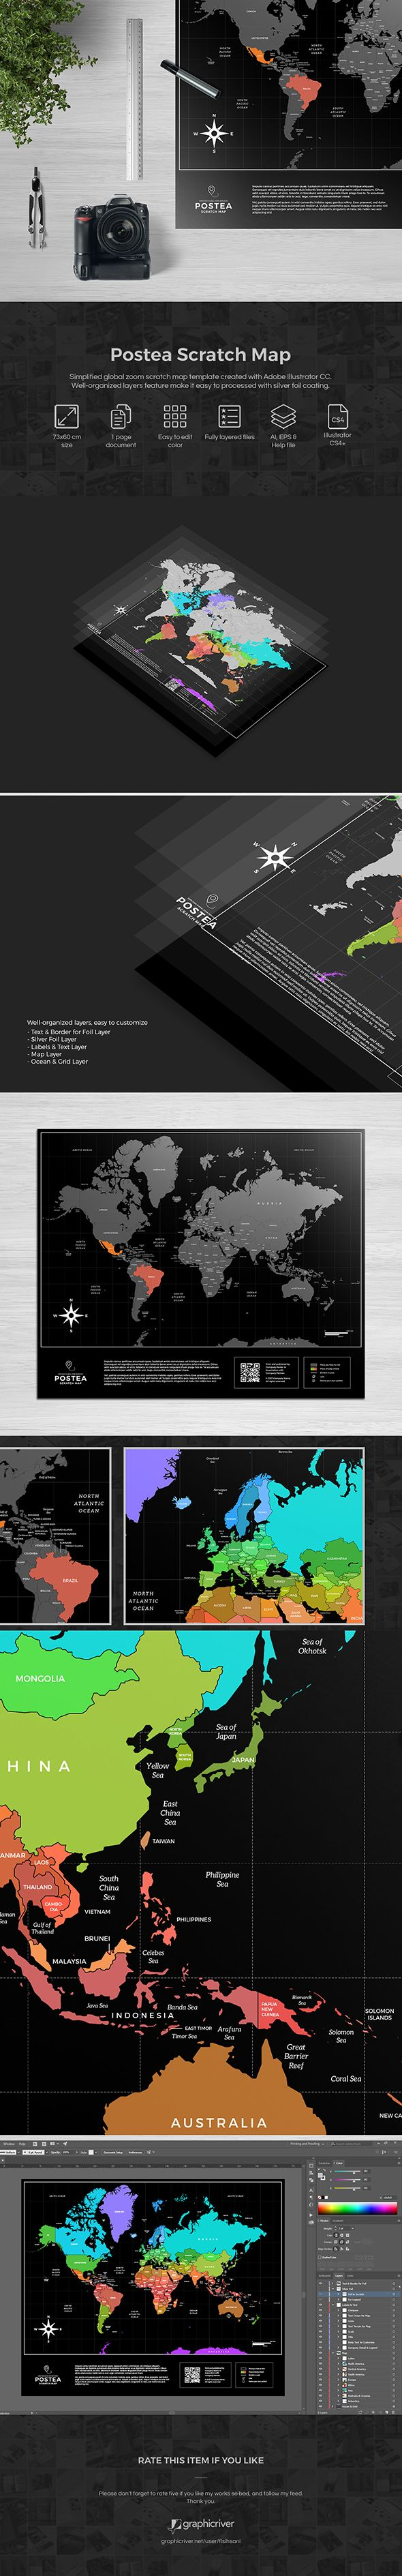 Scratch map in compact mode, Postea—a Conventio's cousin. It's resizable, of course. Out now at GraphicRiver. #adobeillustrator #africa #ai #america #asia #australia #backpacker #coated #envato #europe #eps #foil #freelogo #graphic #graphicriver #illustrator #luxury #map #marketplace #mercator #print #publisher